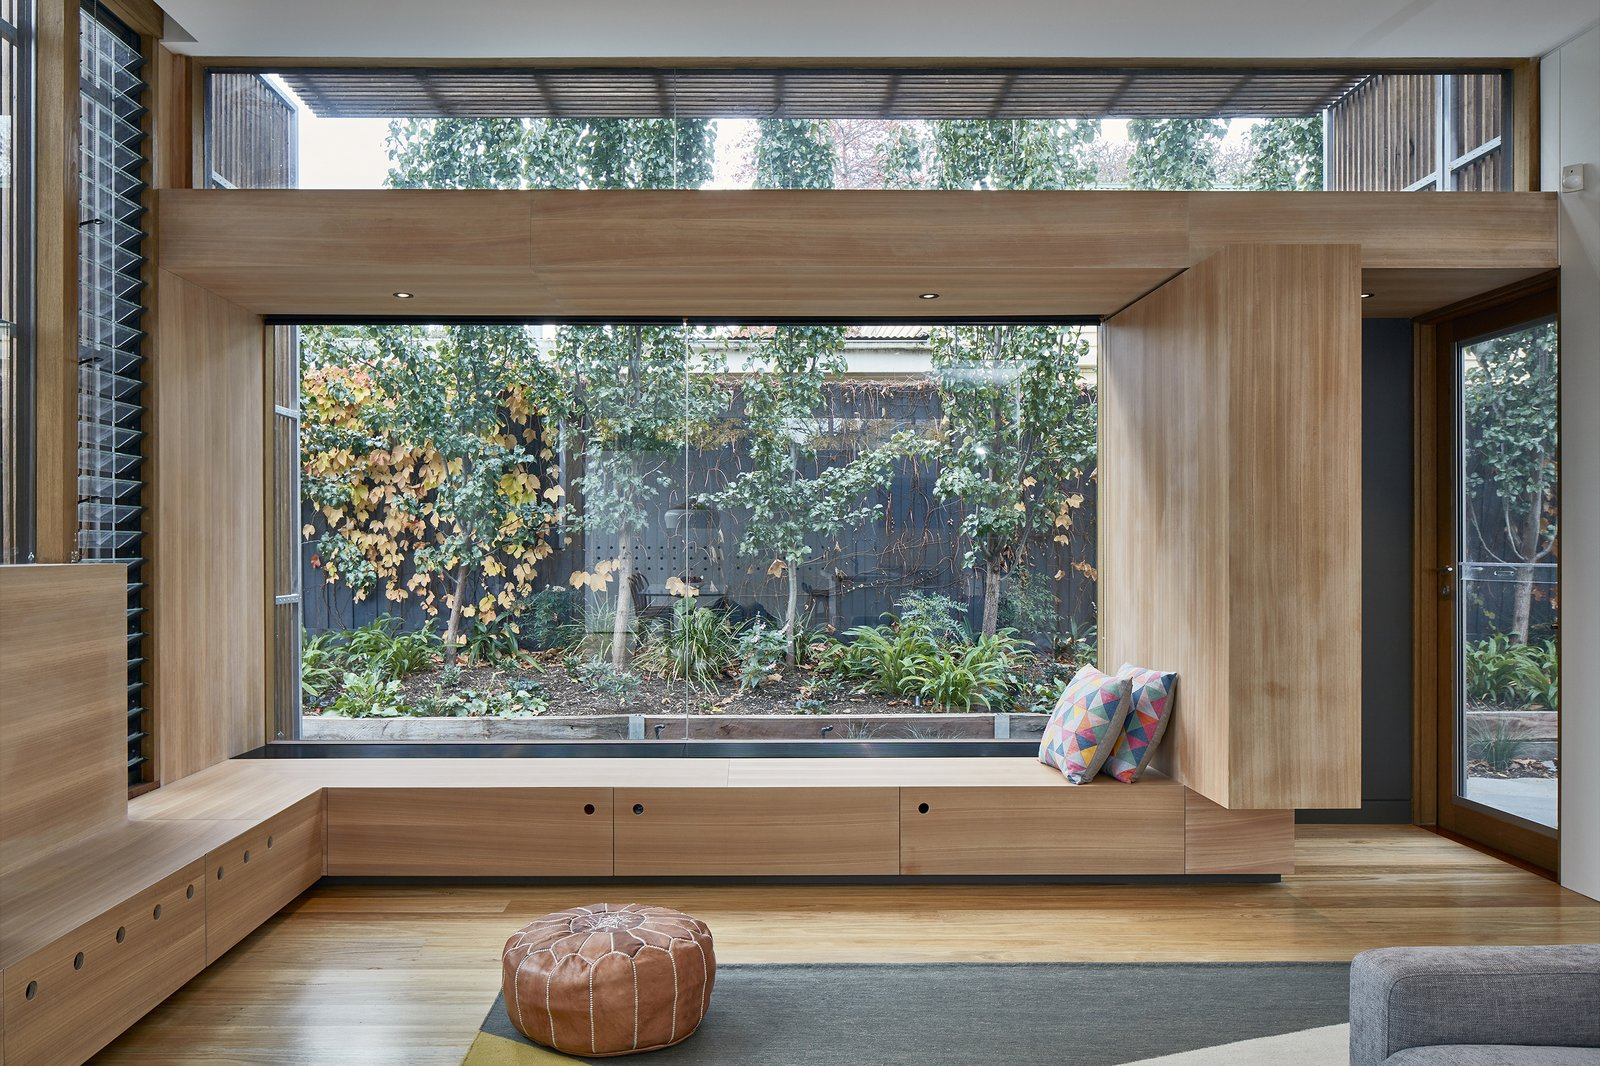 Living Room, Light Hardwood Floor, Recessed Lighting, Bench, Sofa, and Rug Floor Upon entering the house, one immediately sees right through to the rear garden from the main corridor.  Best Photos from Wooden Screens Shade This Sustainable Melbourne Residence